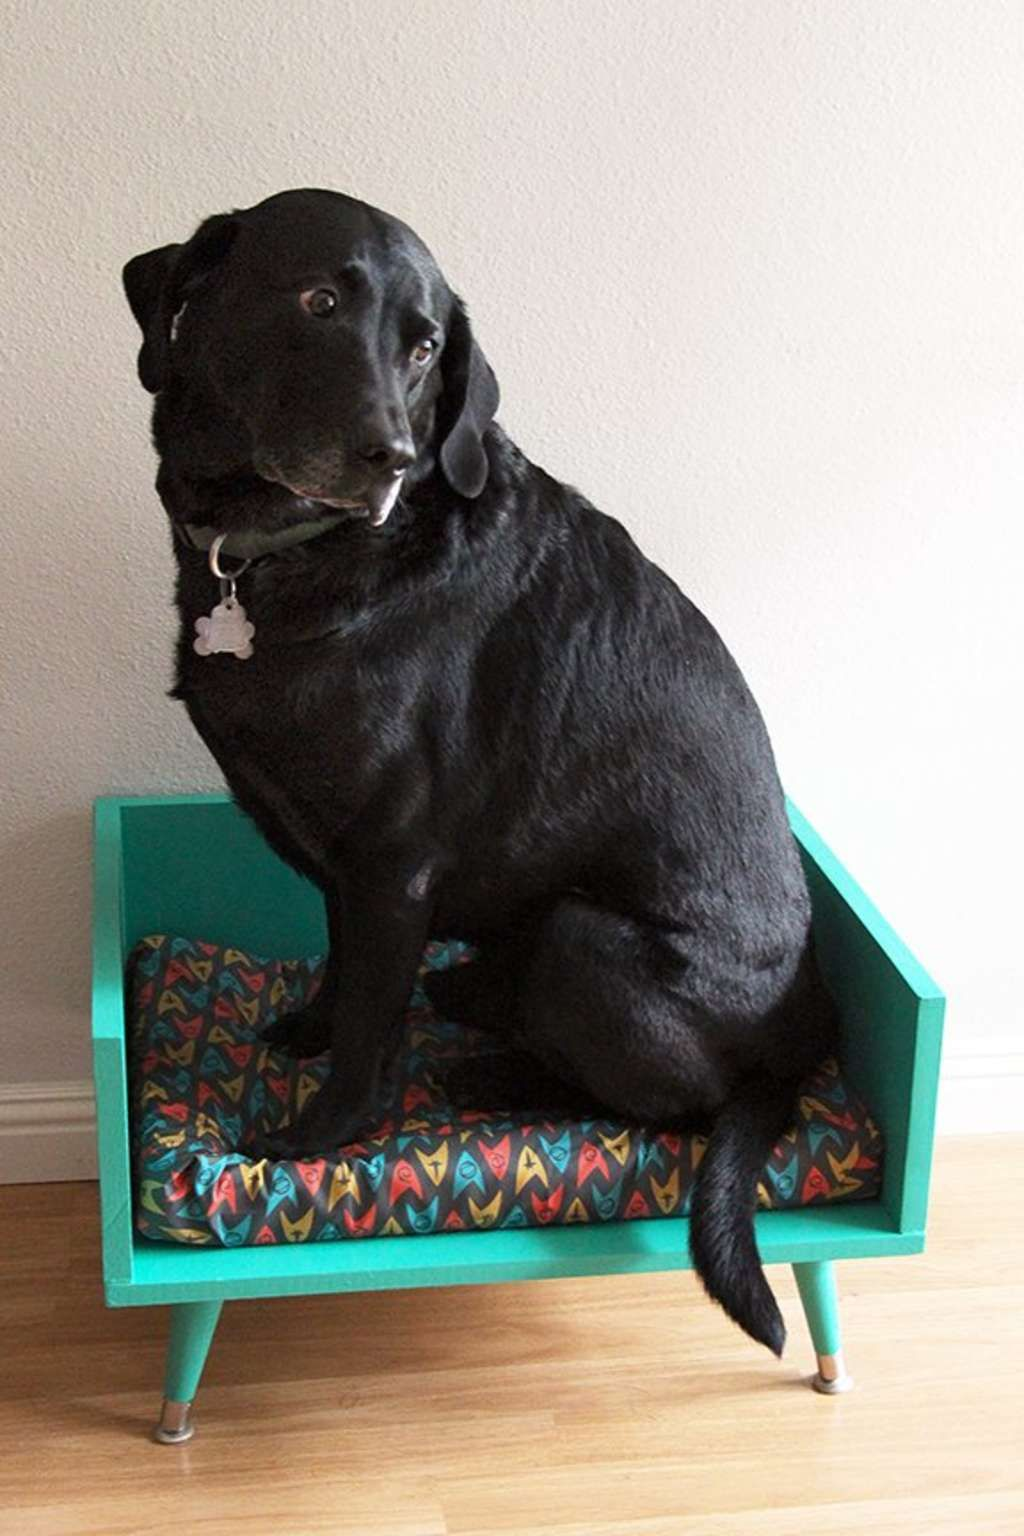 Want a cool, custom pet bed that matches your mid century